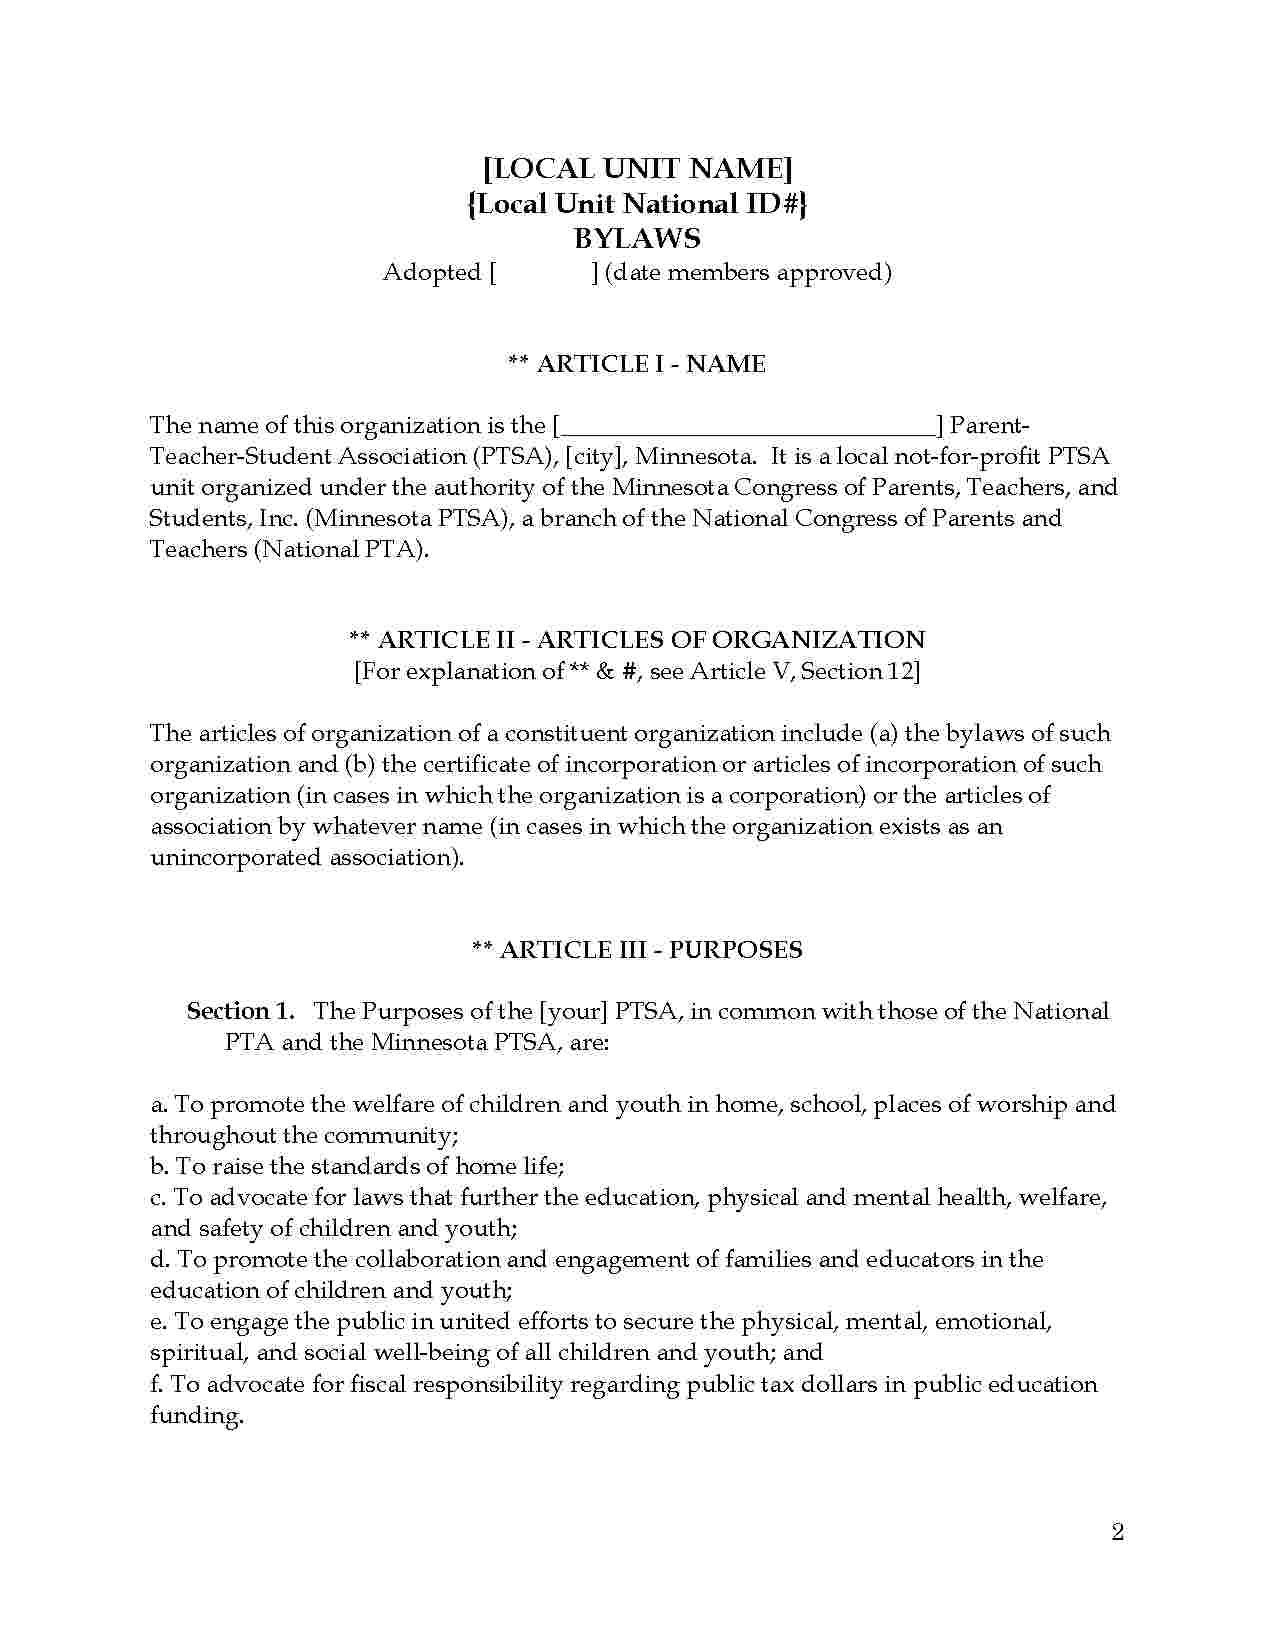 Templates Articles Of Incorporation Templates Hunter Templates Articles Incorporate